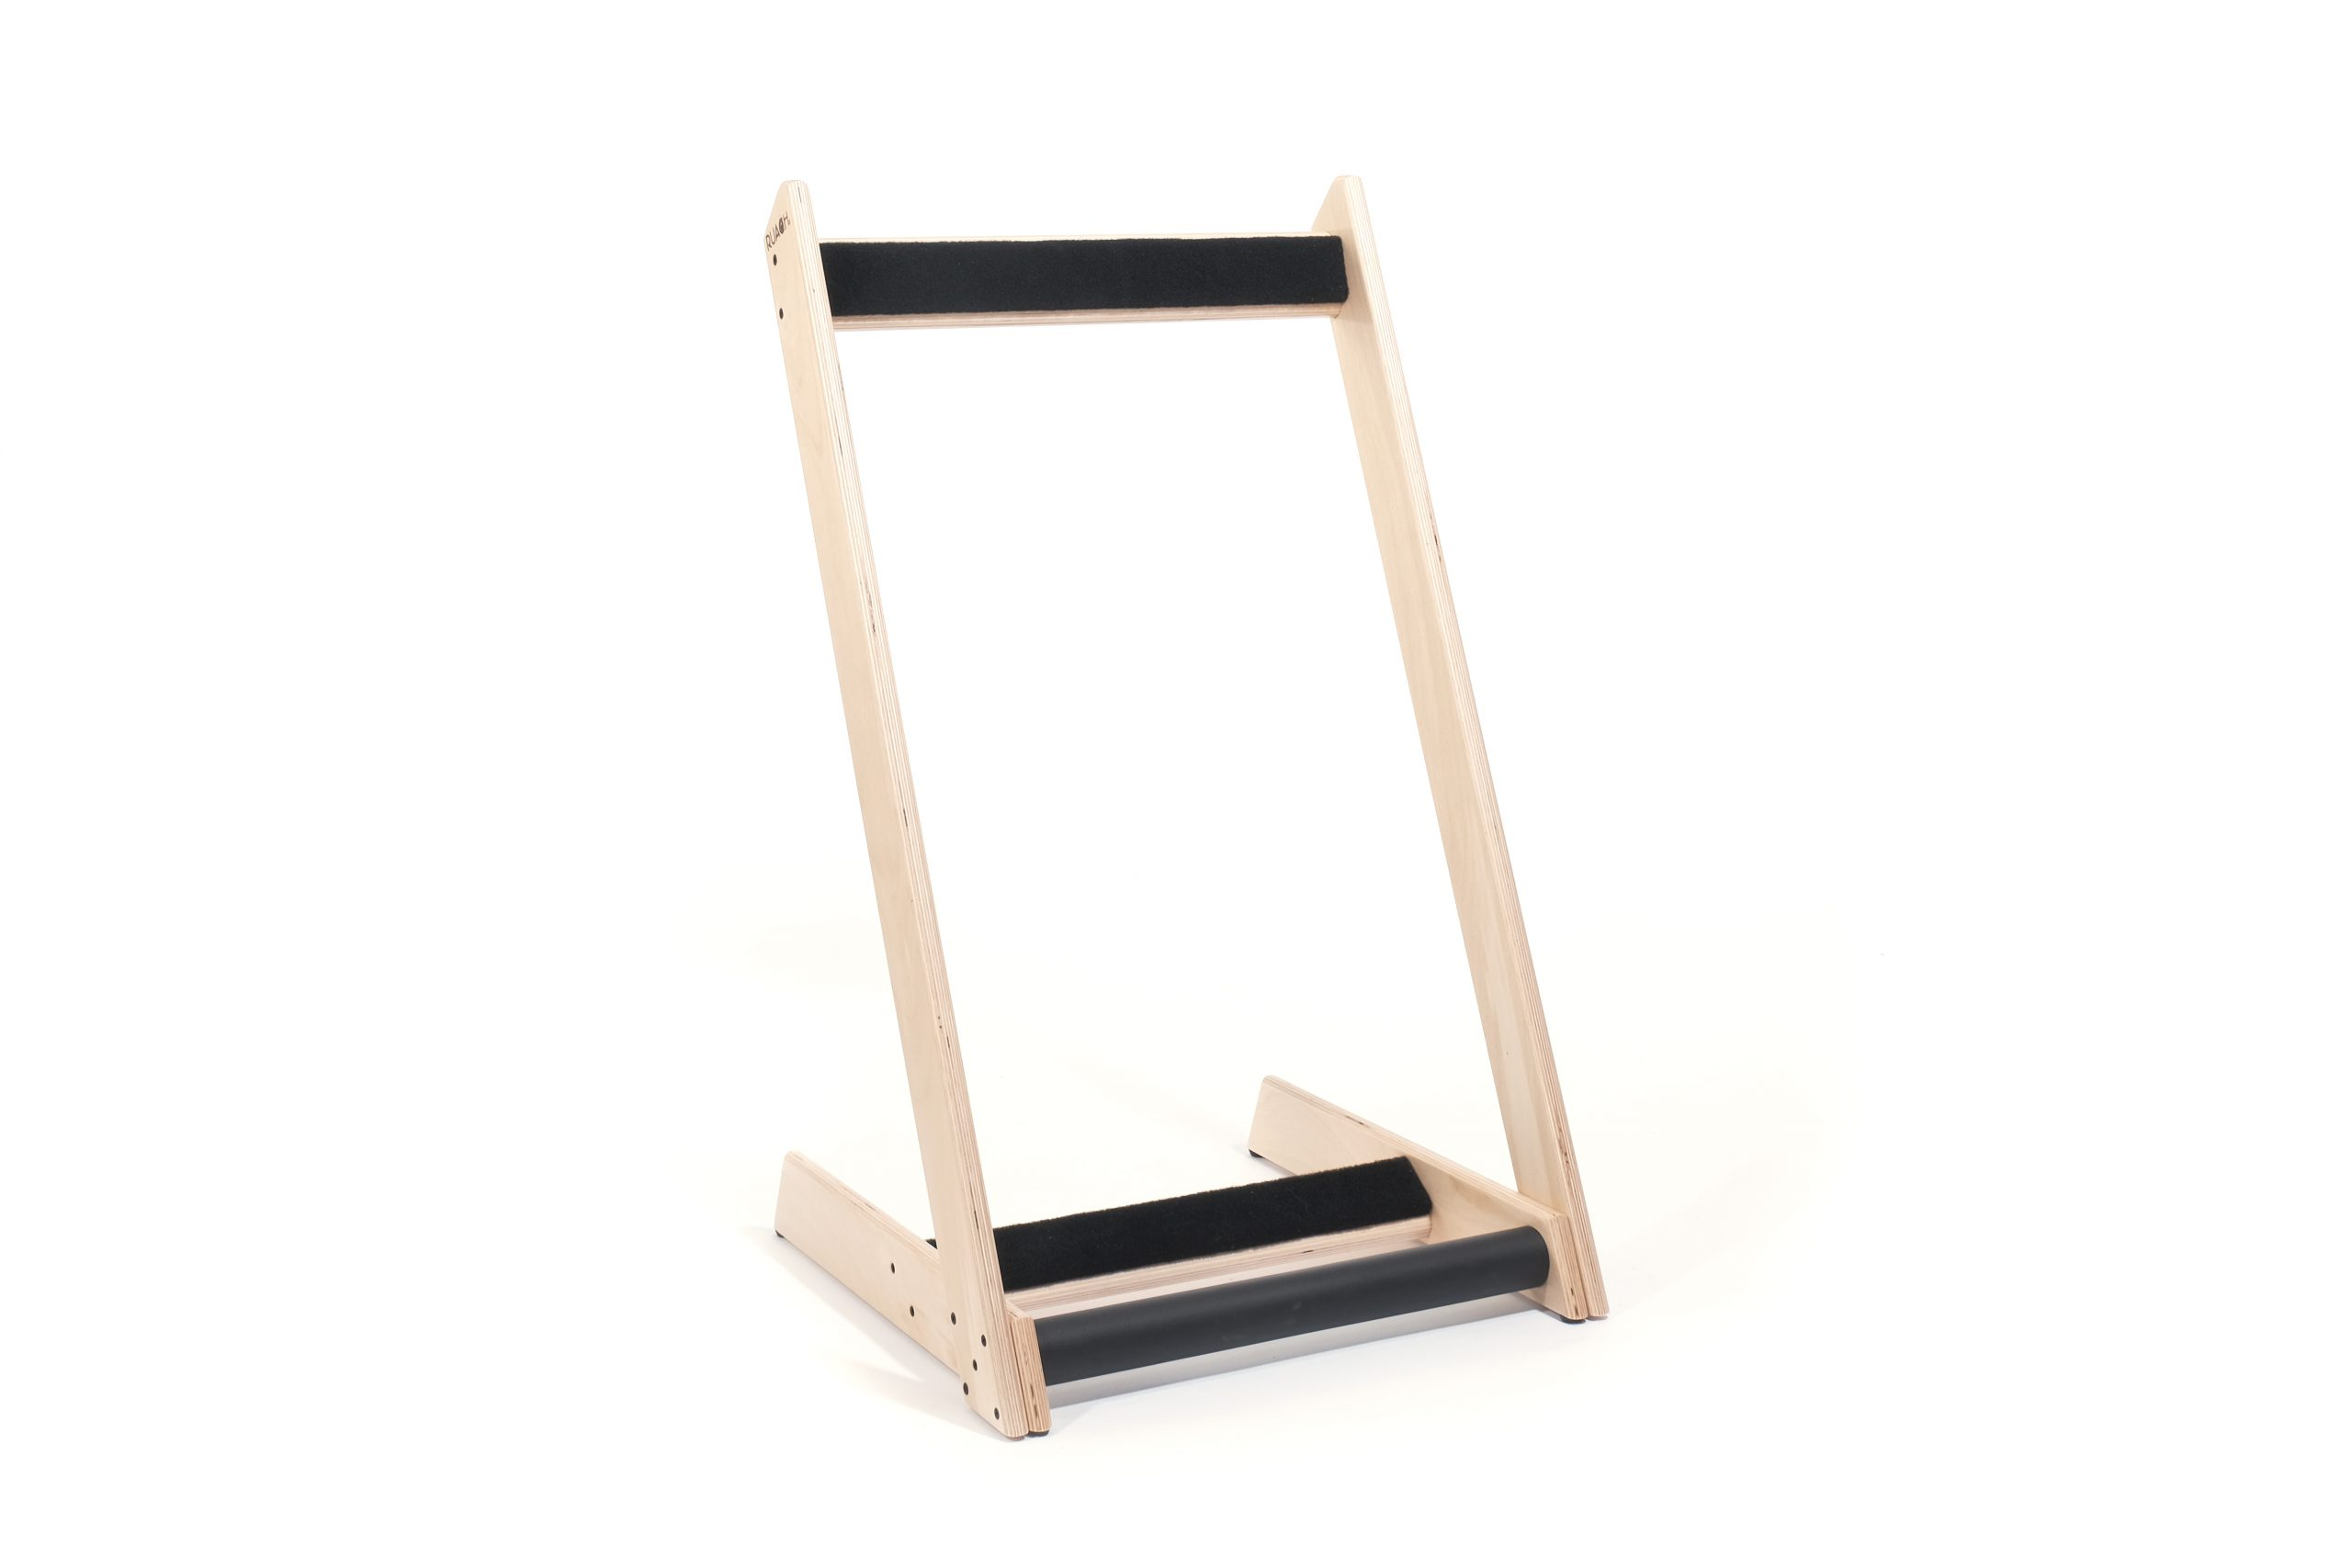 ruach gr 3 customisable 3 way guitar rack for guitars and cases